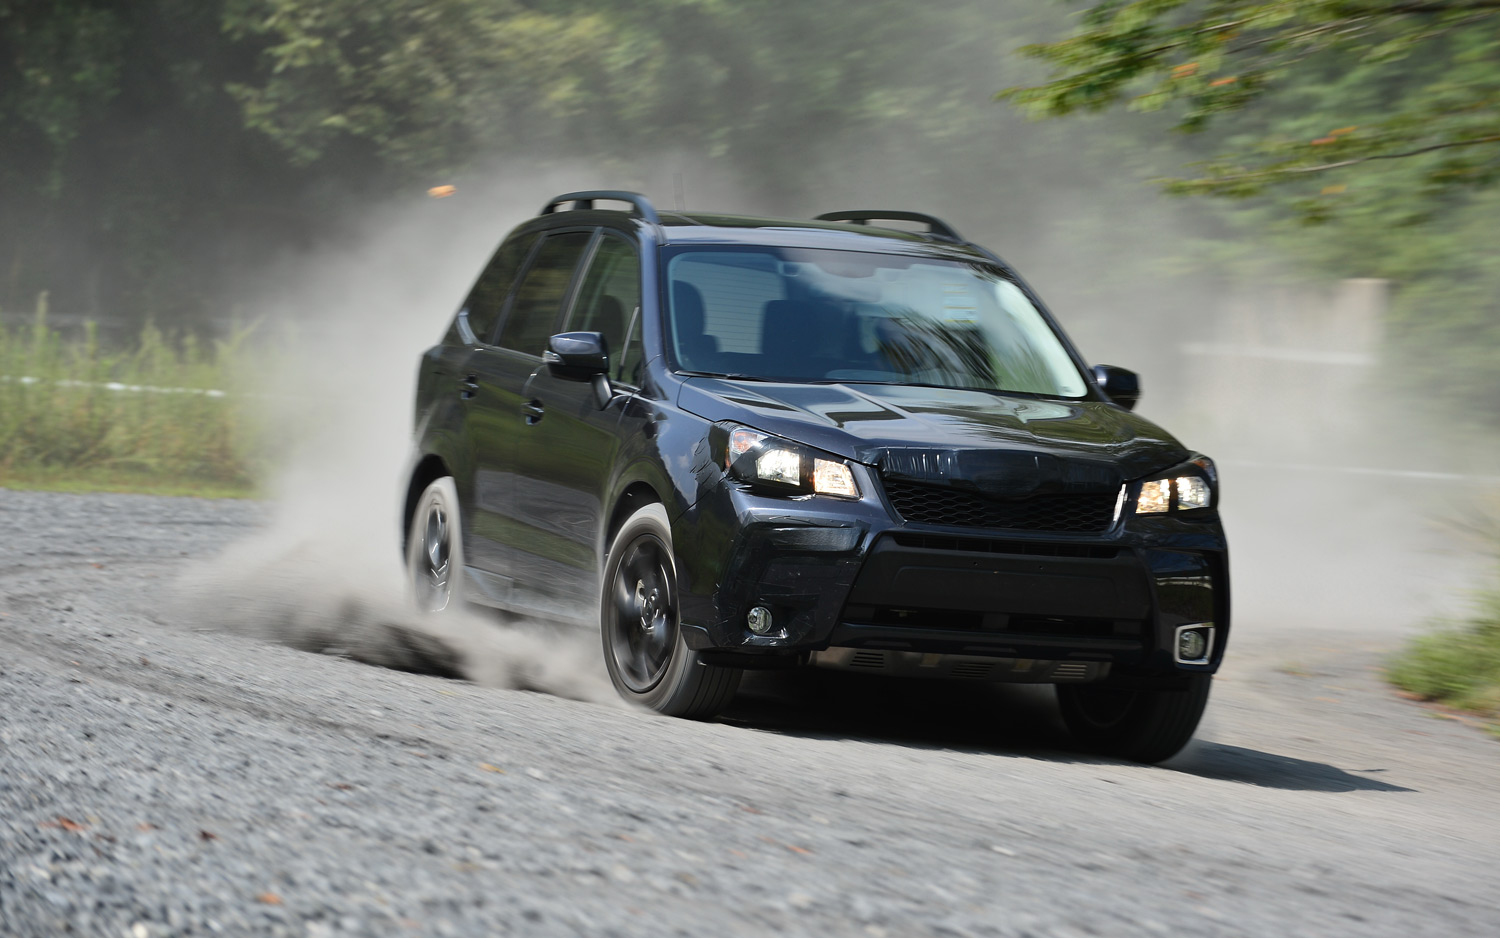 subaru forester - review and photos